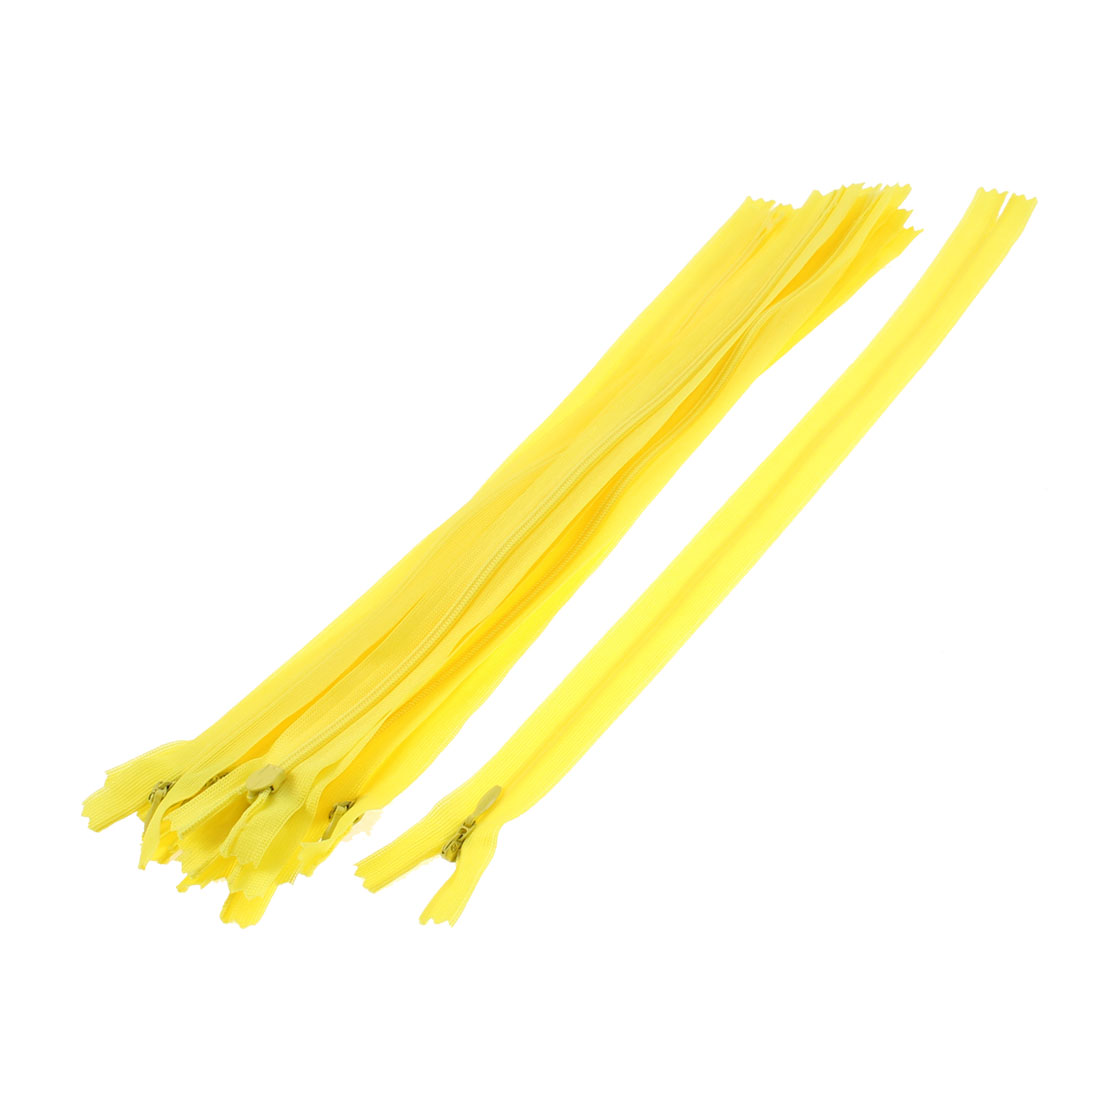 10 Pcs Yellow 12-inch Long Nylon Zippers Zips for Doll Handbag